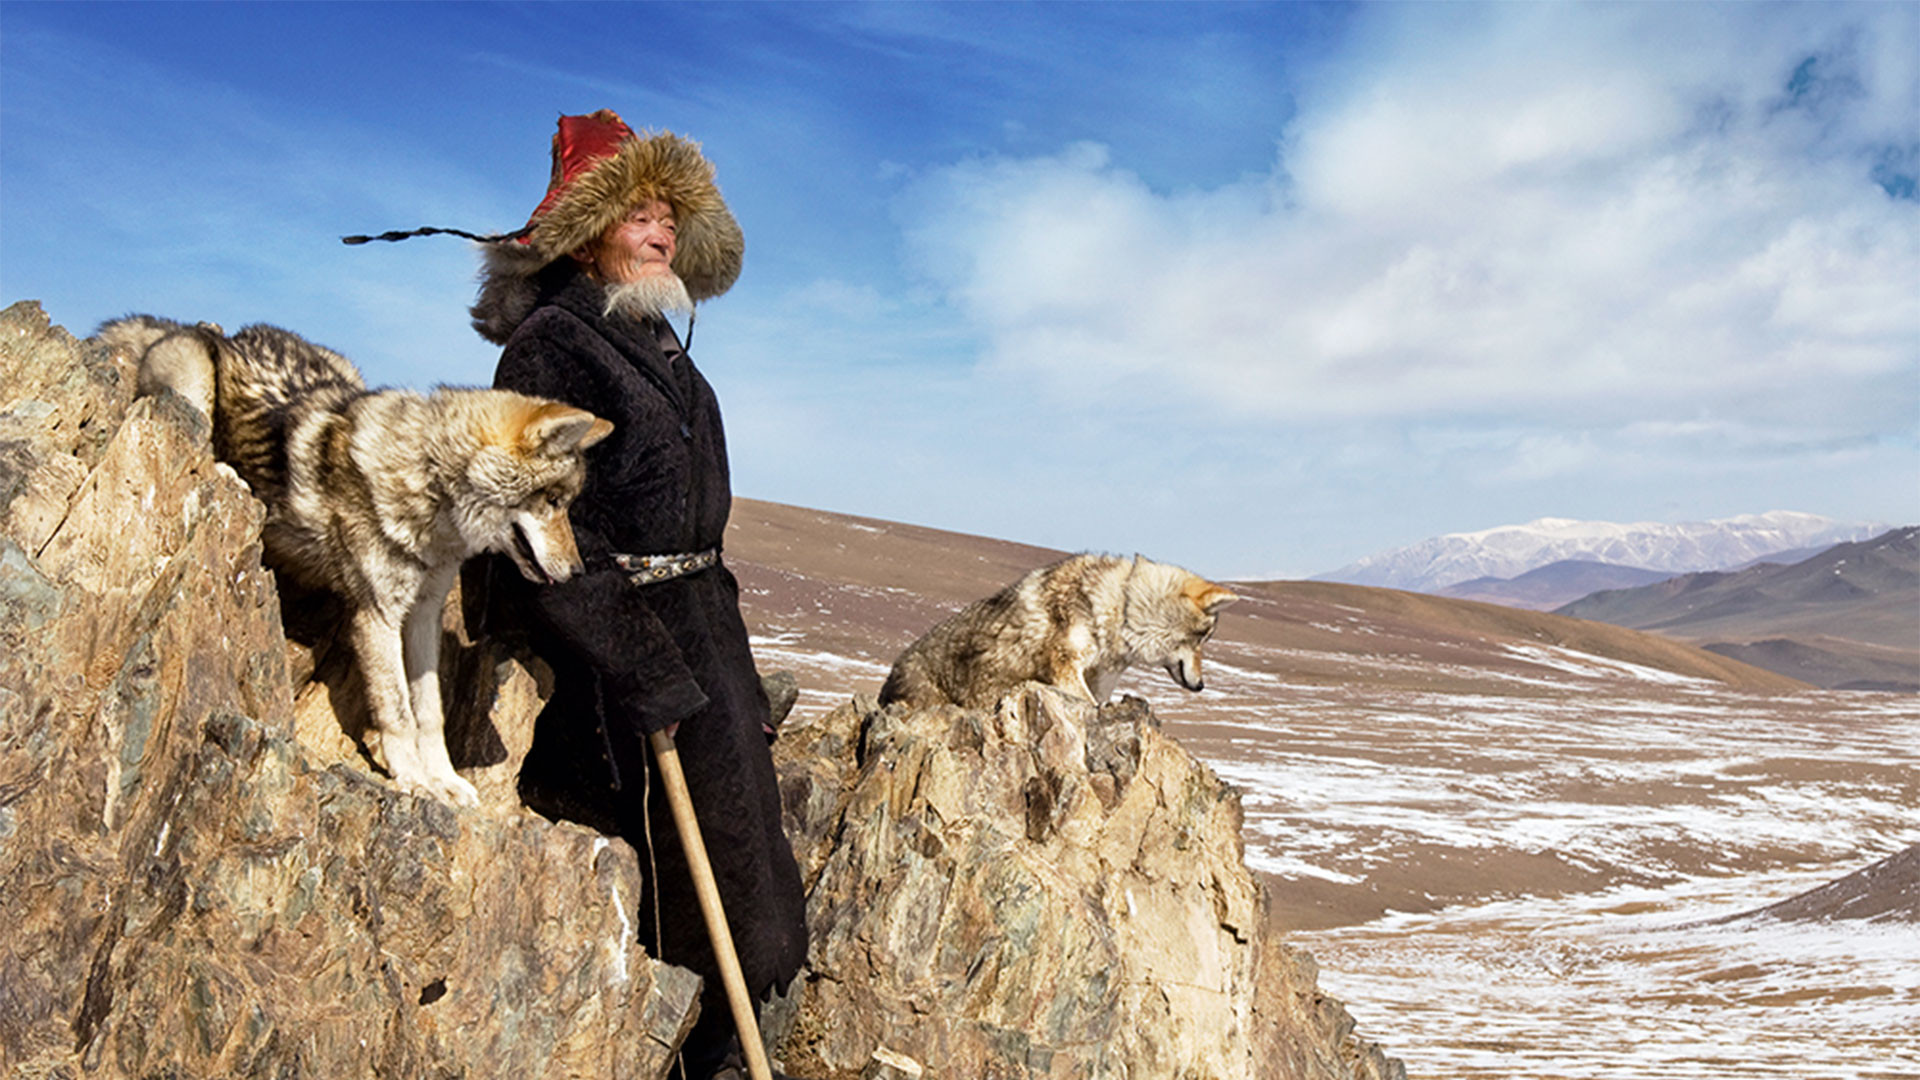 A nomad with tamed wolves in Olgii province, Mongolia